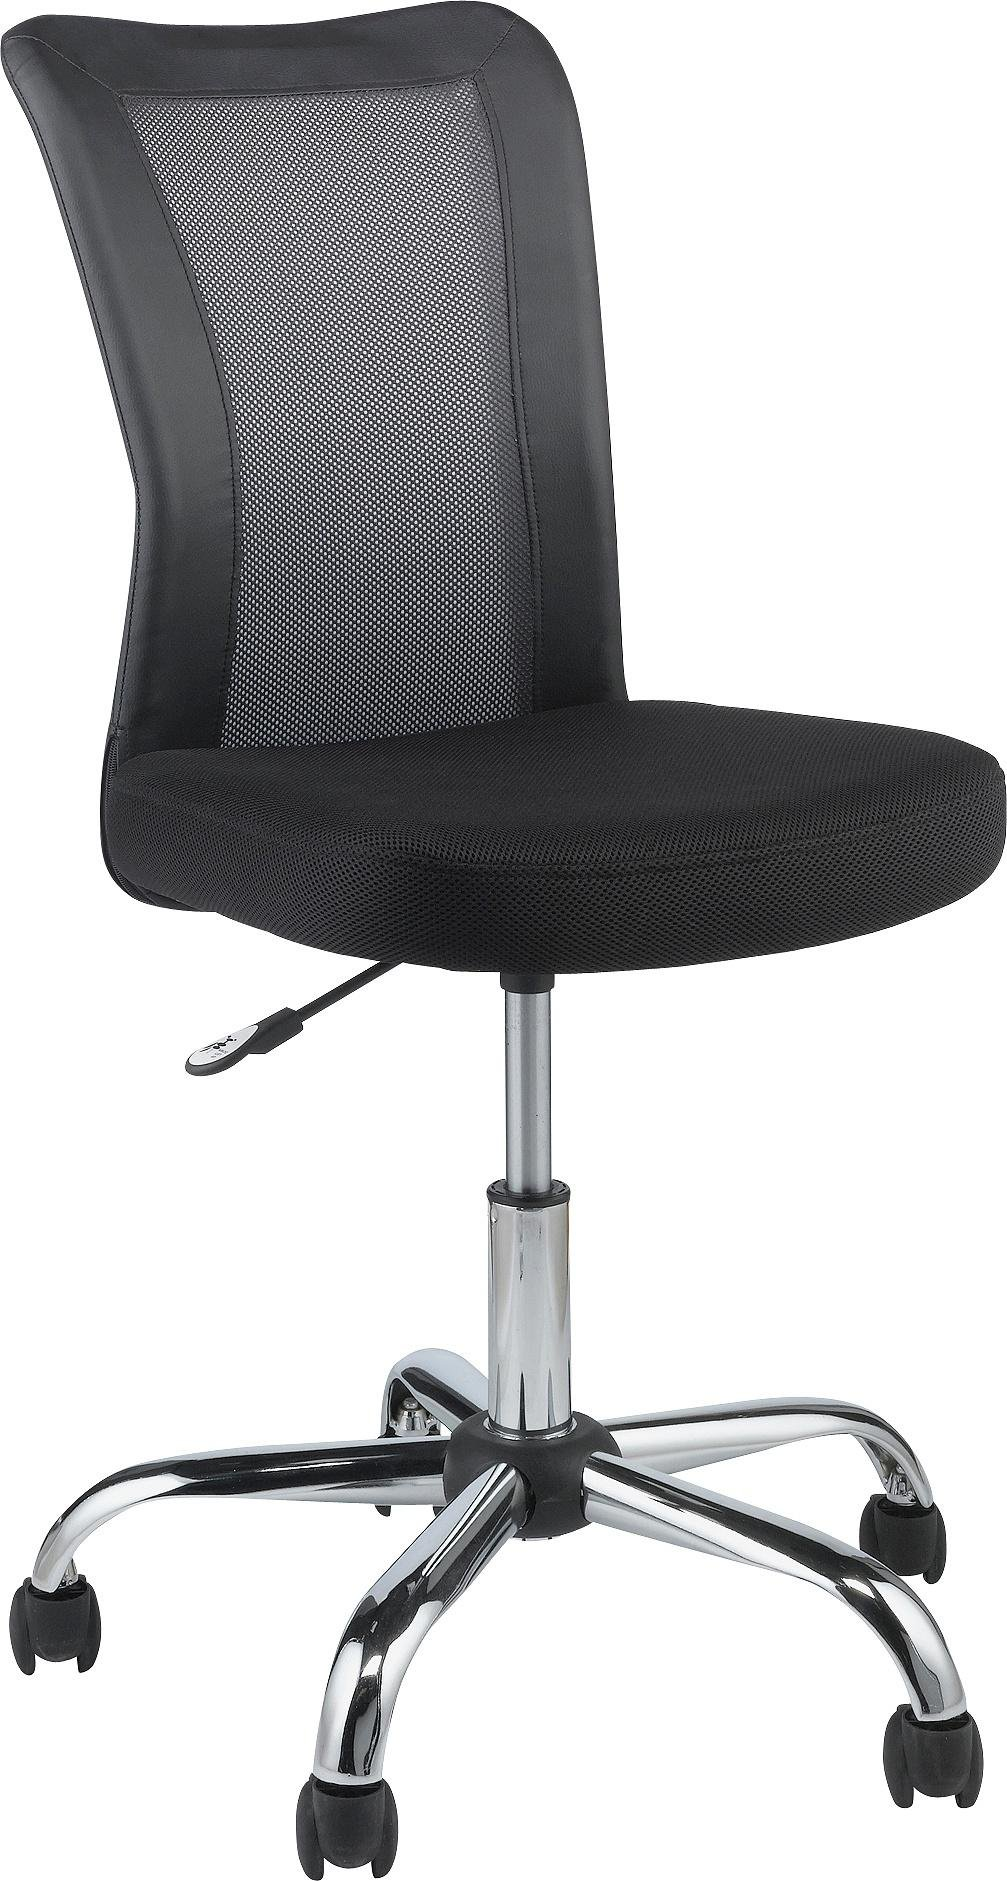 buy home reade mesh gas lift adjustable office chair - black at